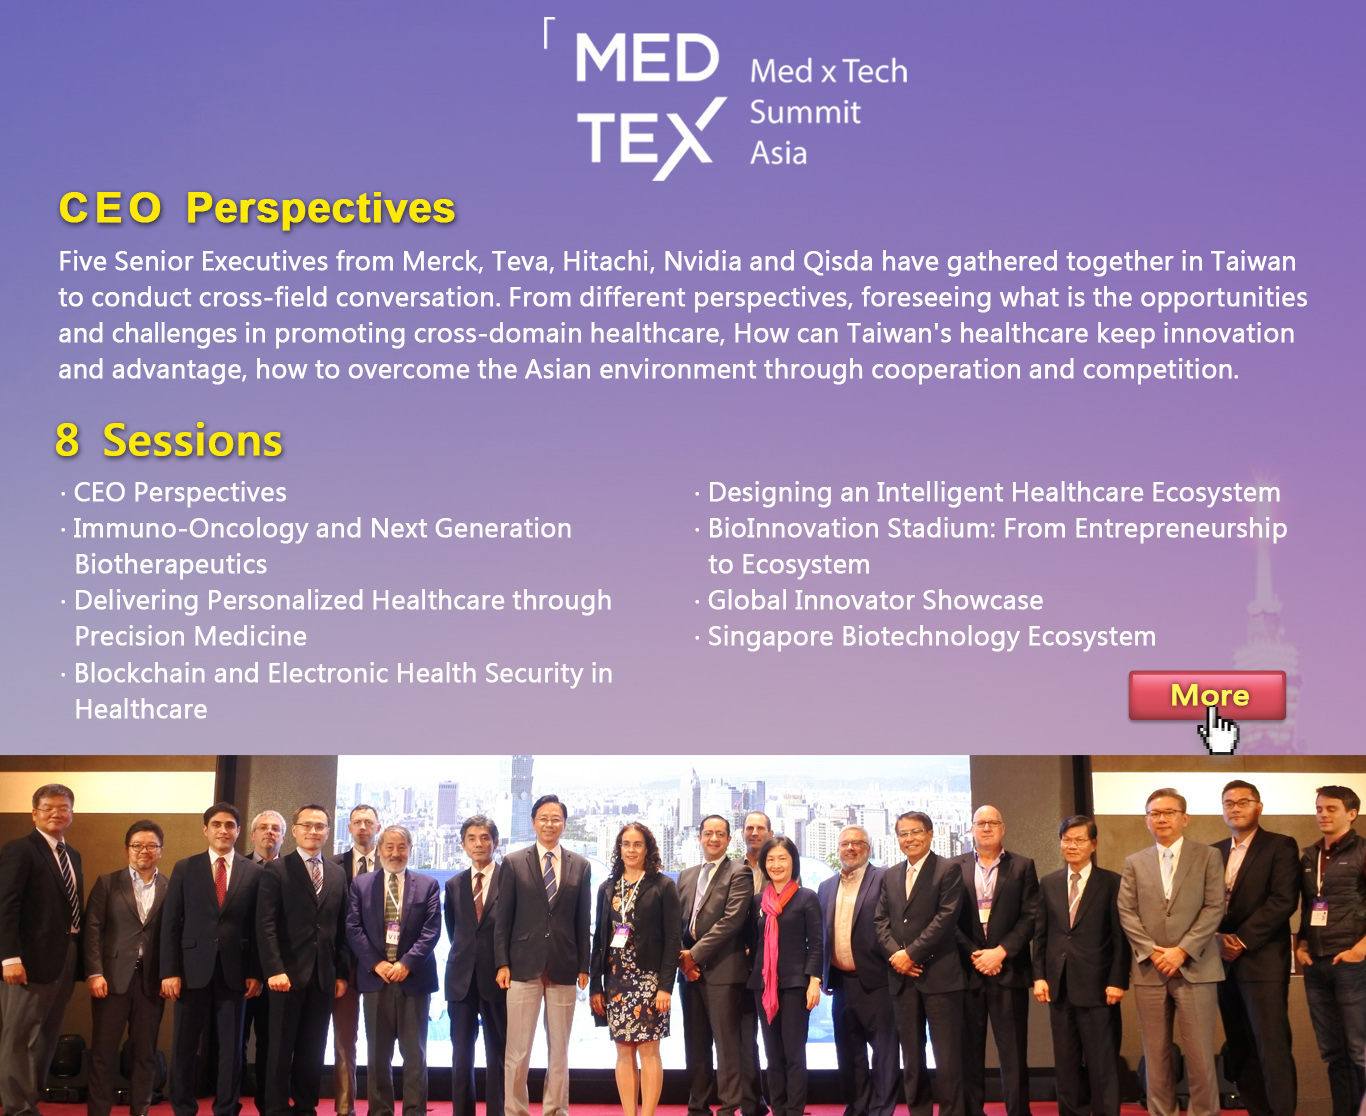 MEDTEX- Med x Tech Summit Asia